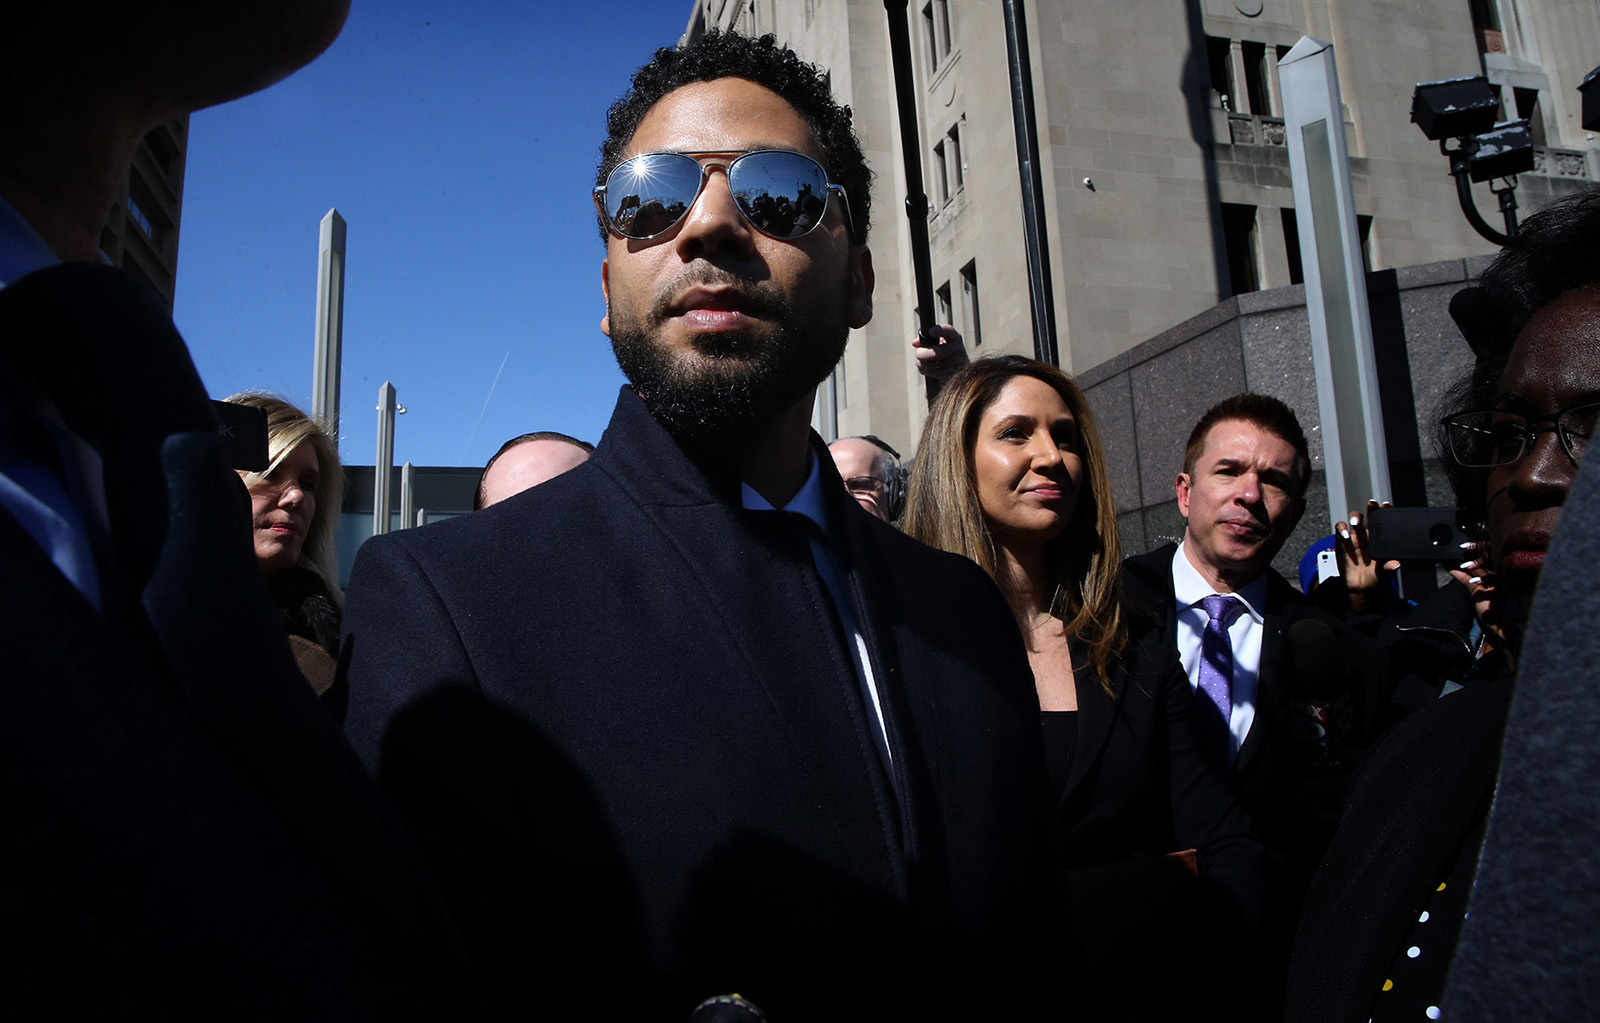 Judge appoints special prosecutor to look into Jussie Smollett controversy